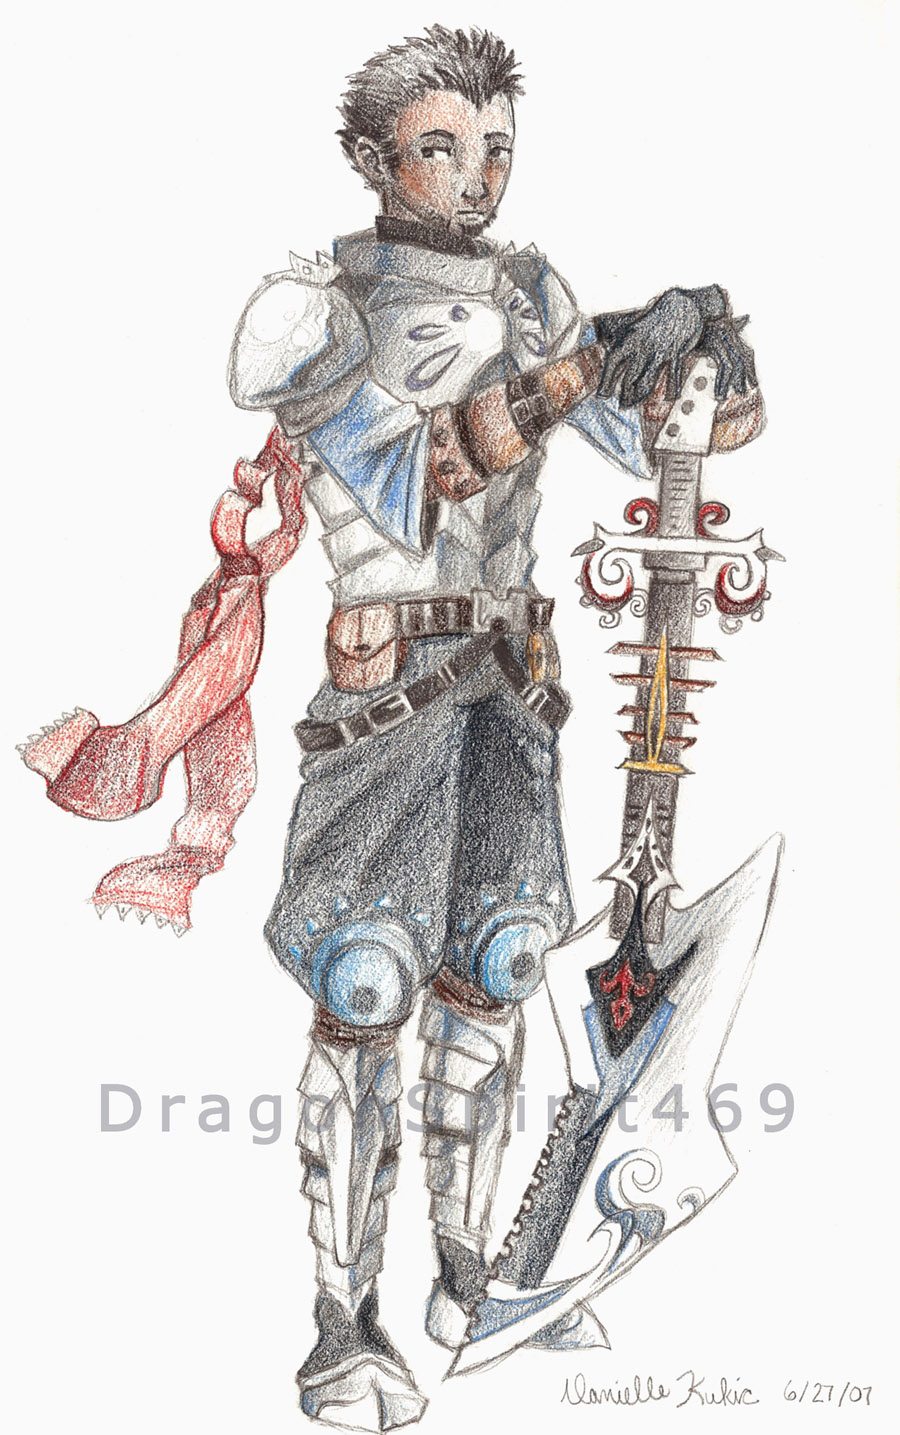 Character Design Final Fantasy Xii : Final fantasy character design imgkid the